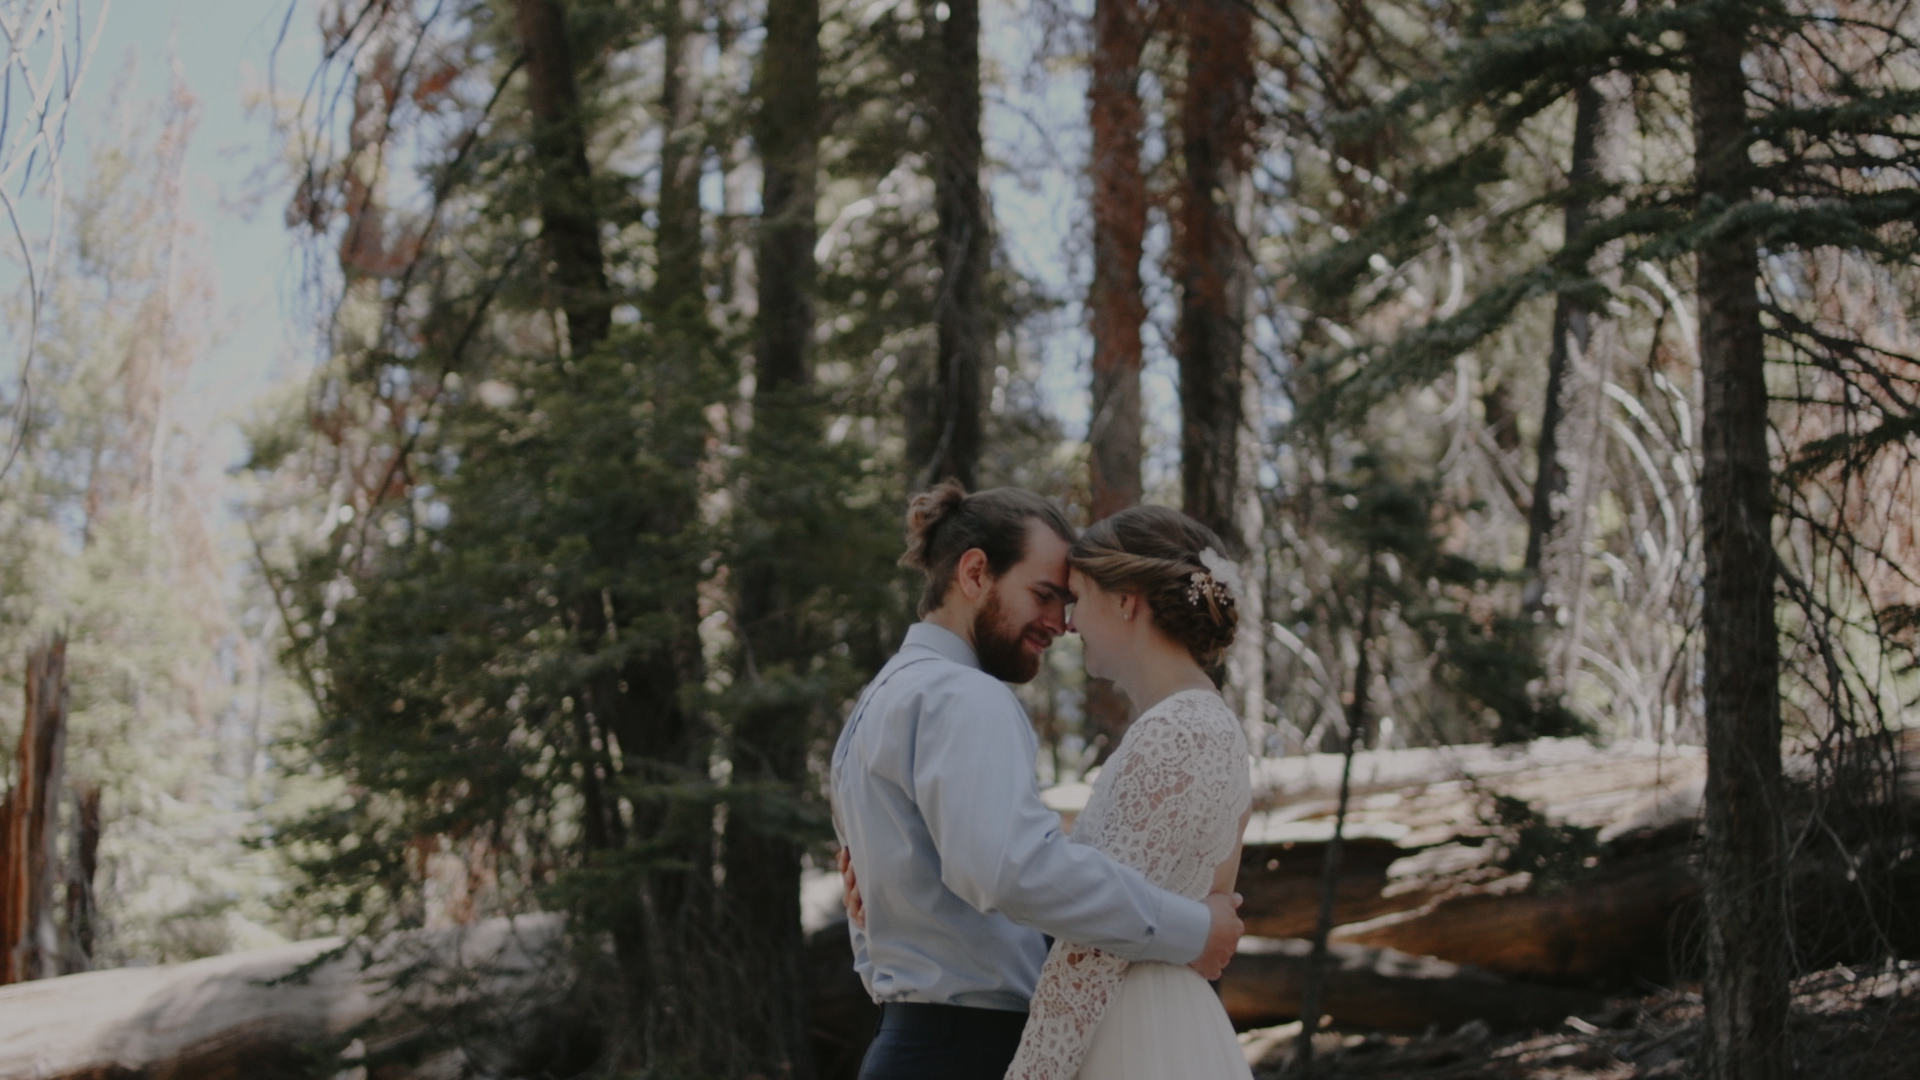 Lexi + David | Yosemite Valley, California | Yosemite National Park